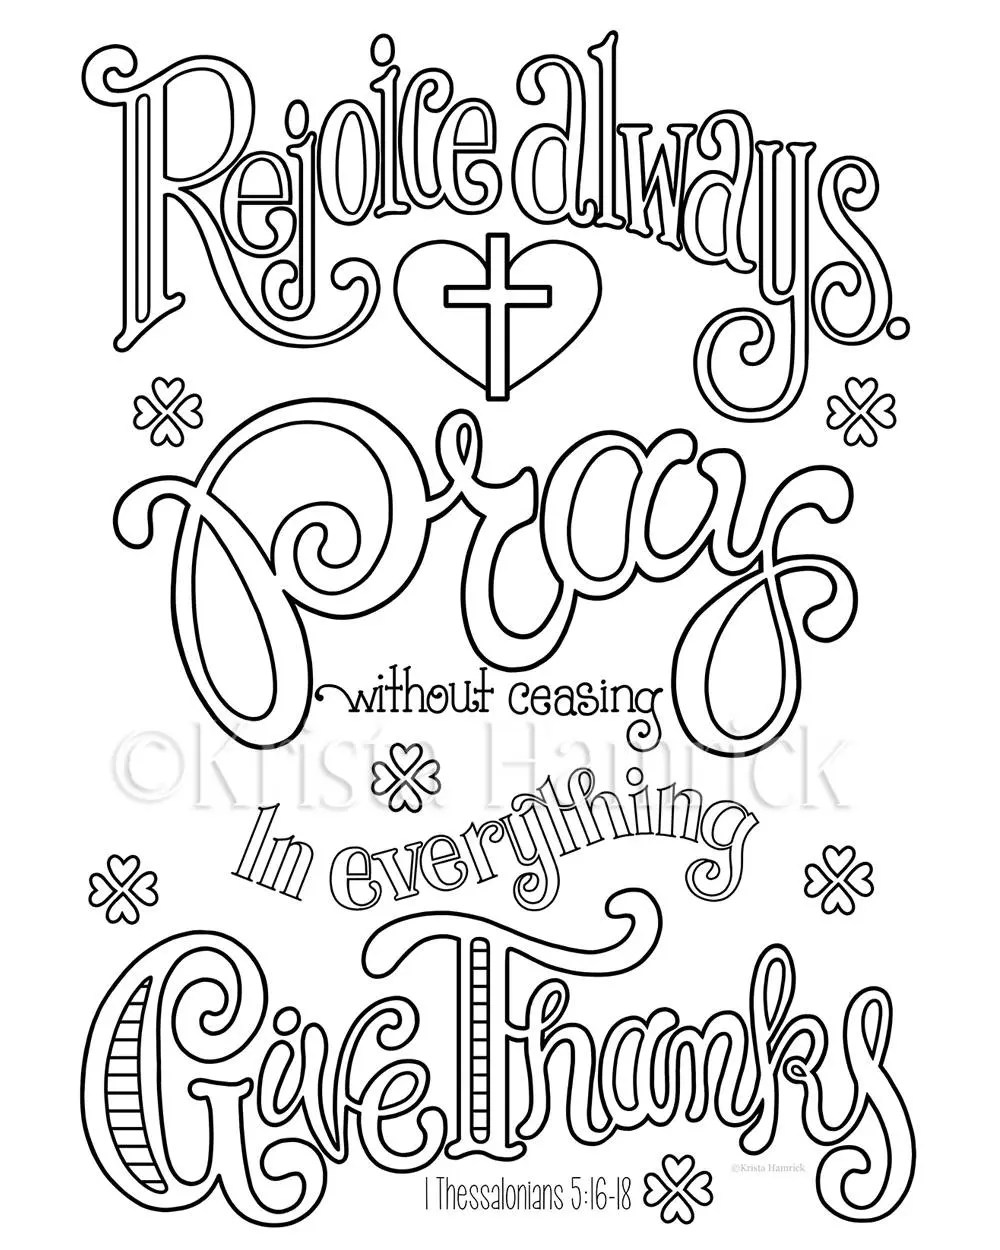 Rejoice Pray Give Thanks coloring page in two sizes: 8.5X11